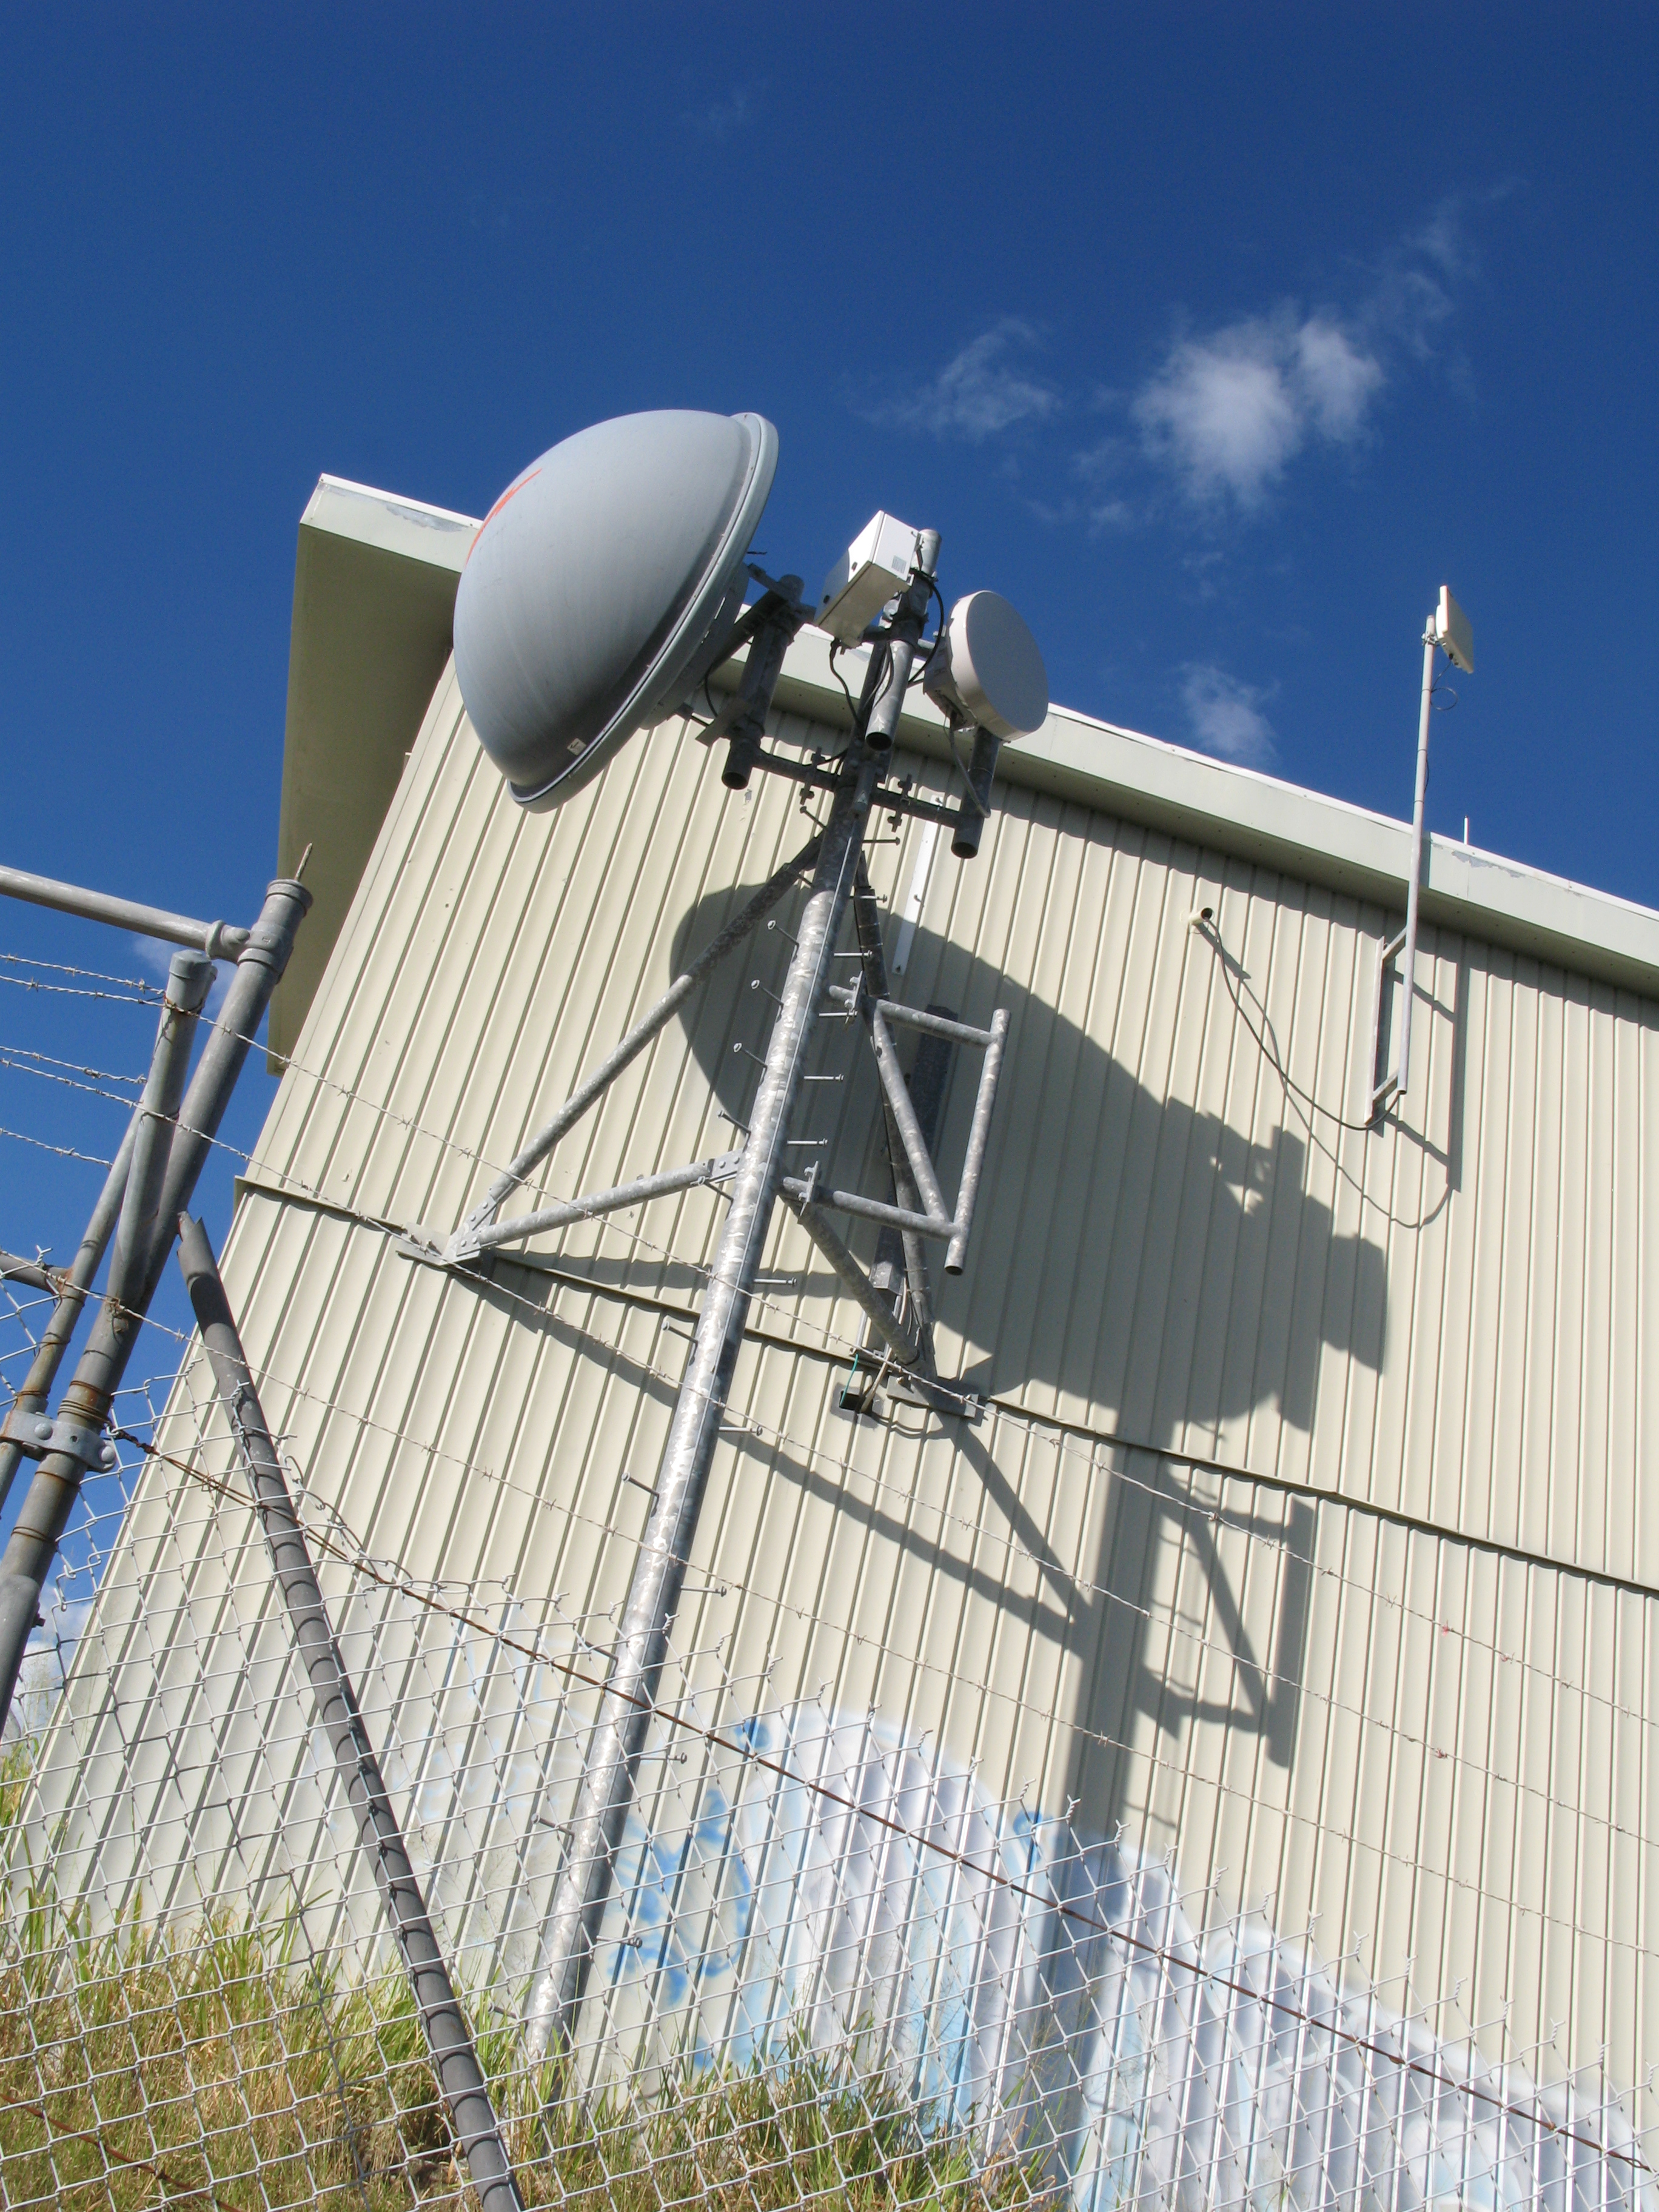 communications and mobile phone microwave antenna dish